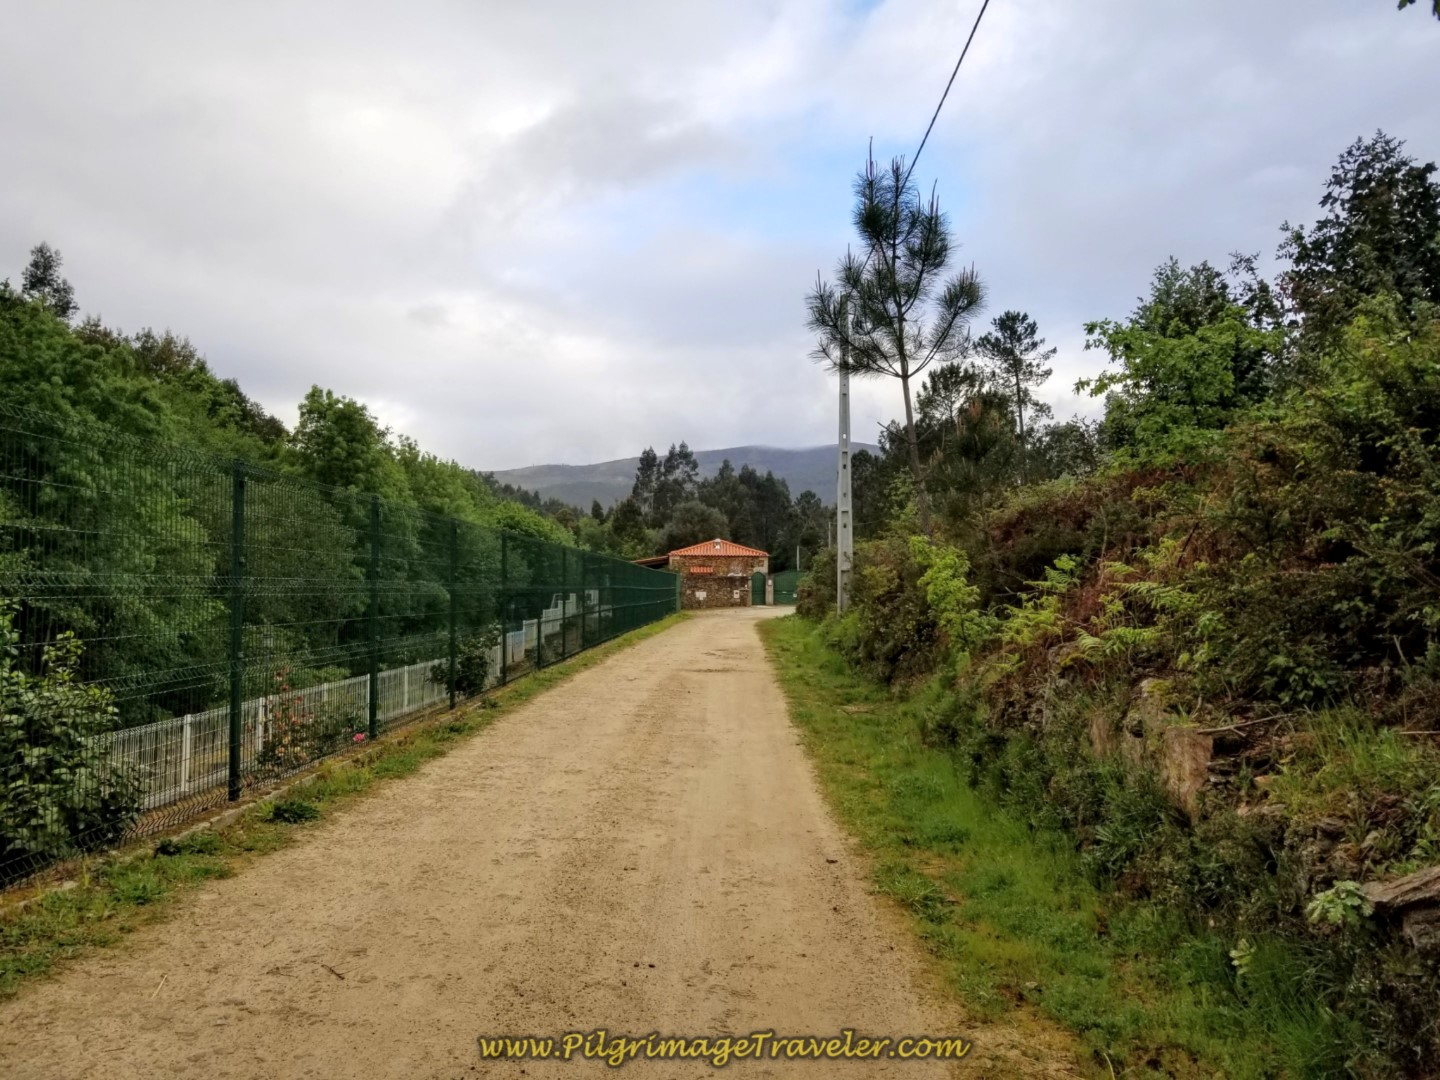 Parque de Pescas Café and Restaurante Ahead on day eighteen on the Central Route of the Portuguese Camino